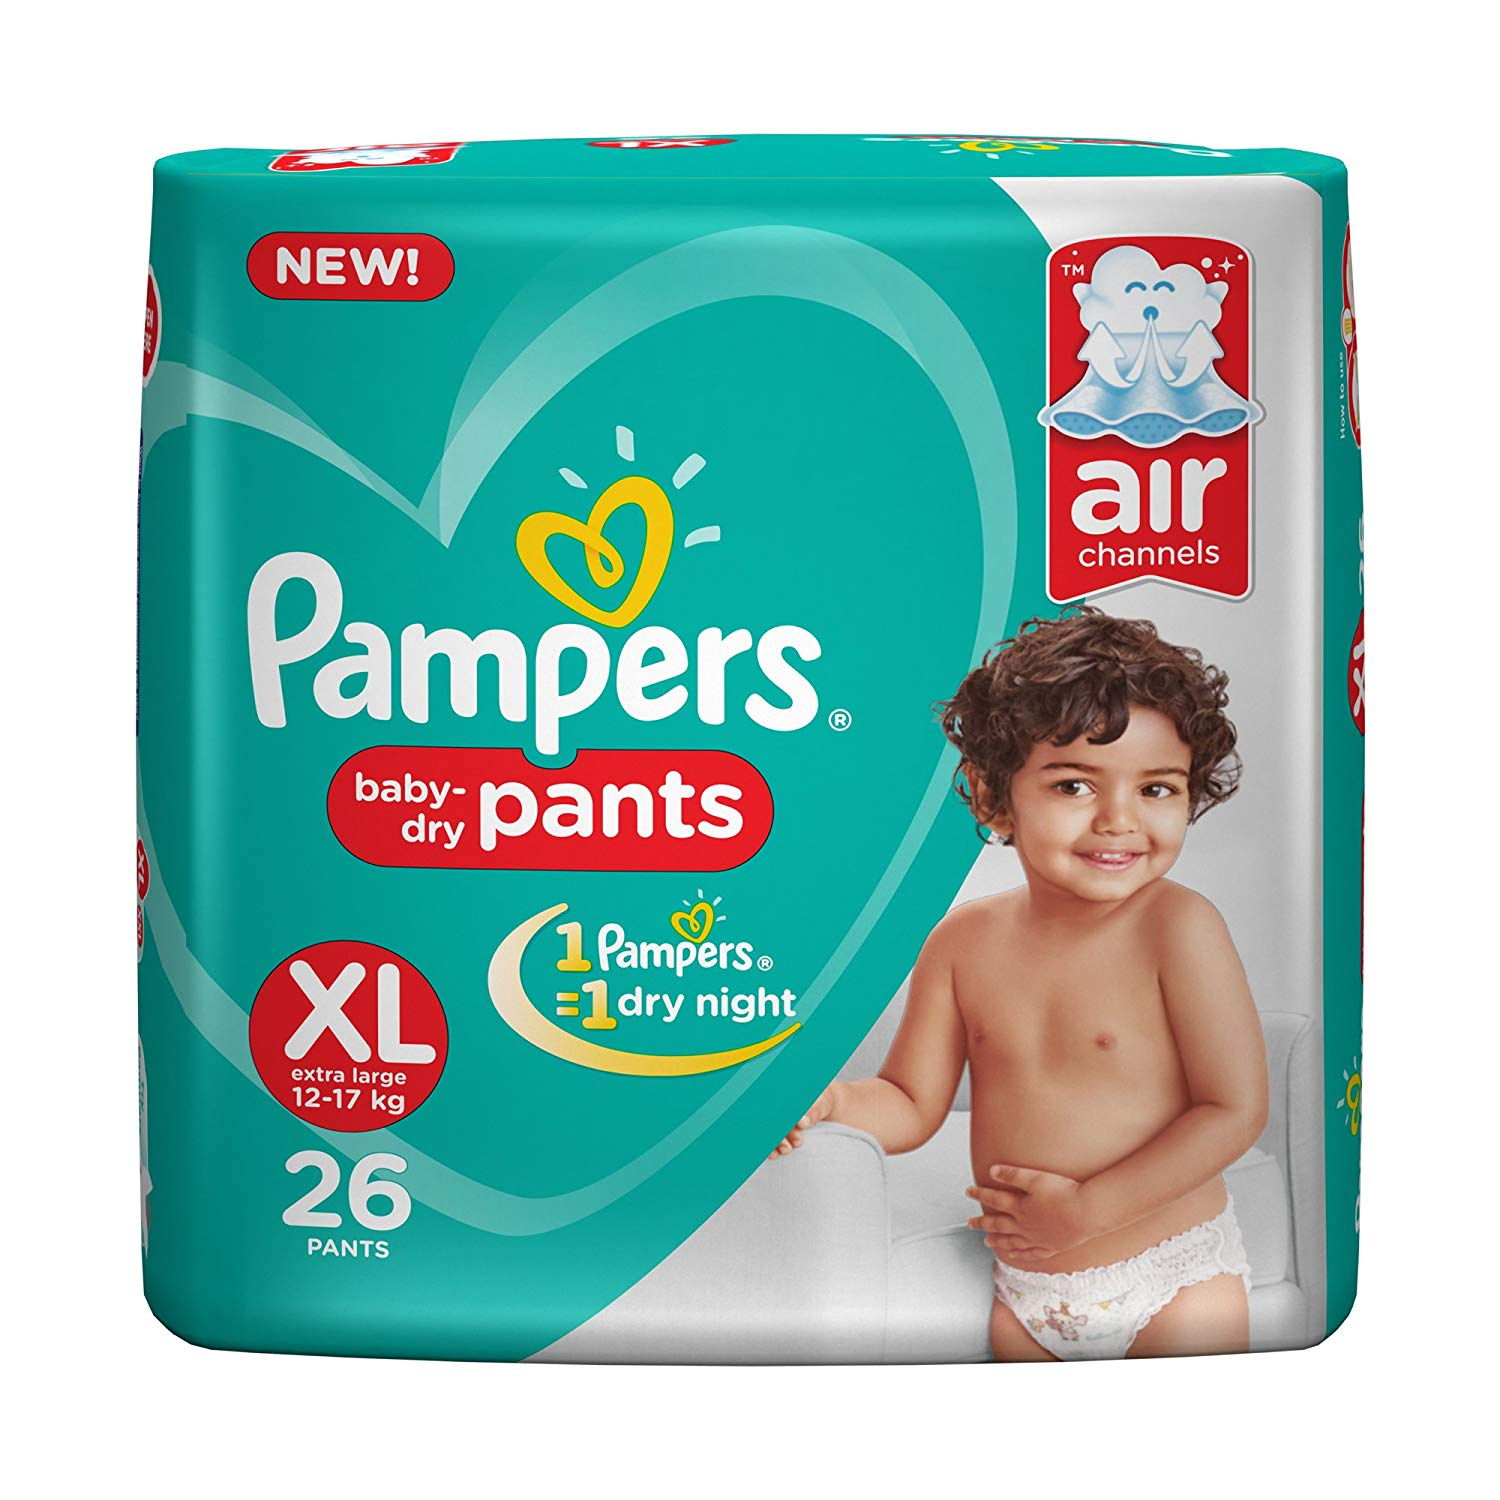 Pampers Pants Extra Large Size Diapers(26 Count)